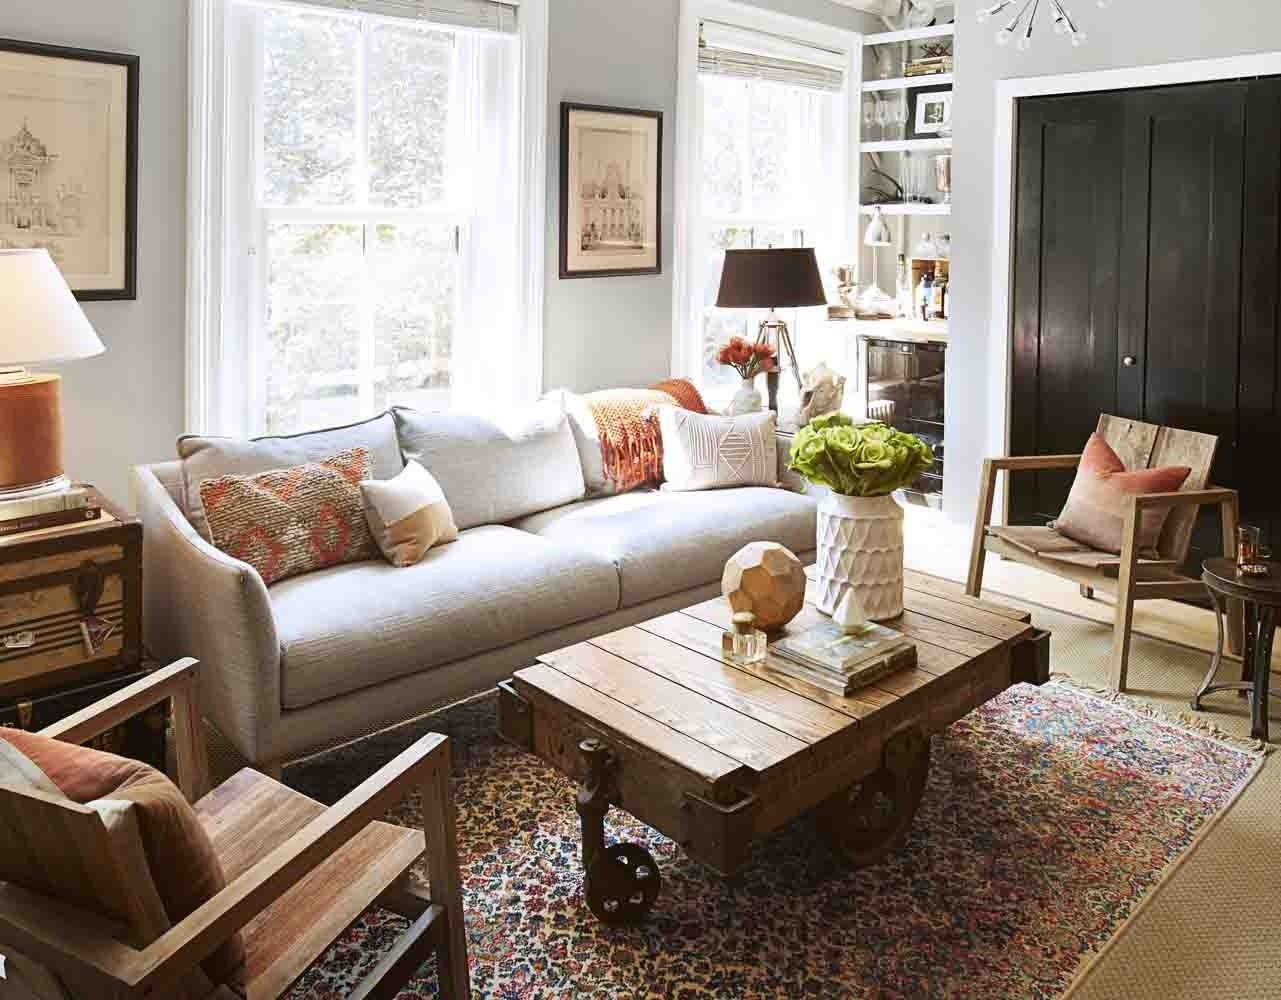 10 Pretty Ideas For A Living Room 51 best living room ideas stylish living room decorating designs 26 2020